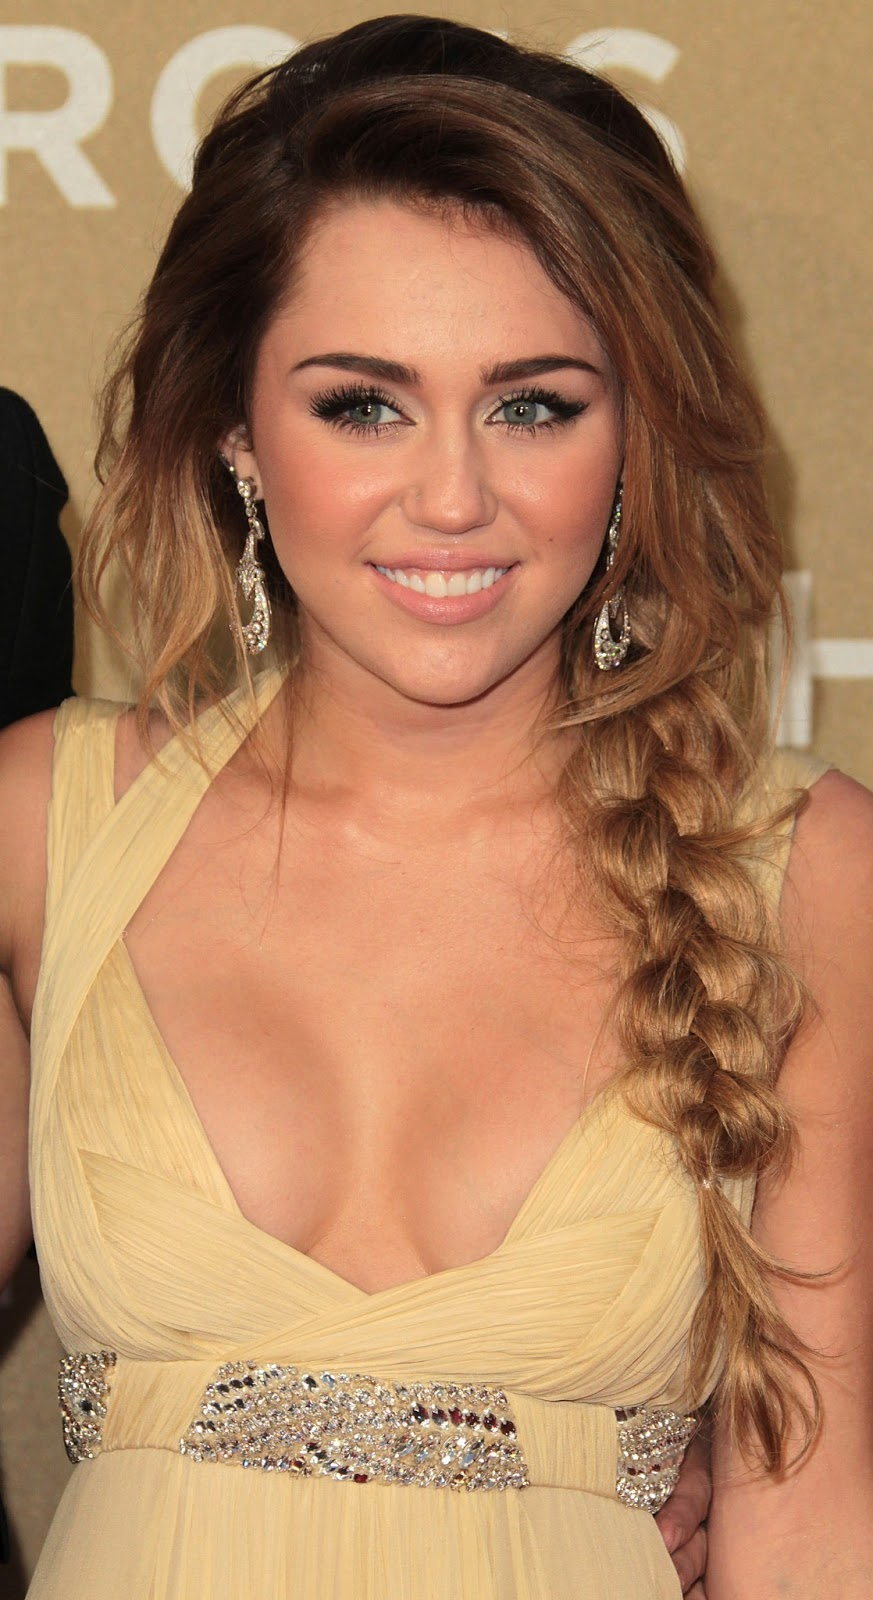 Tylerandkenzie: Miley Cyrus Hot